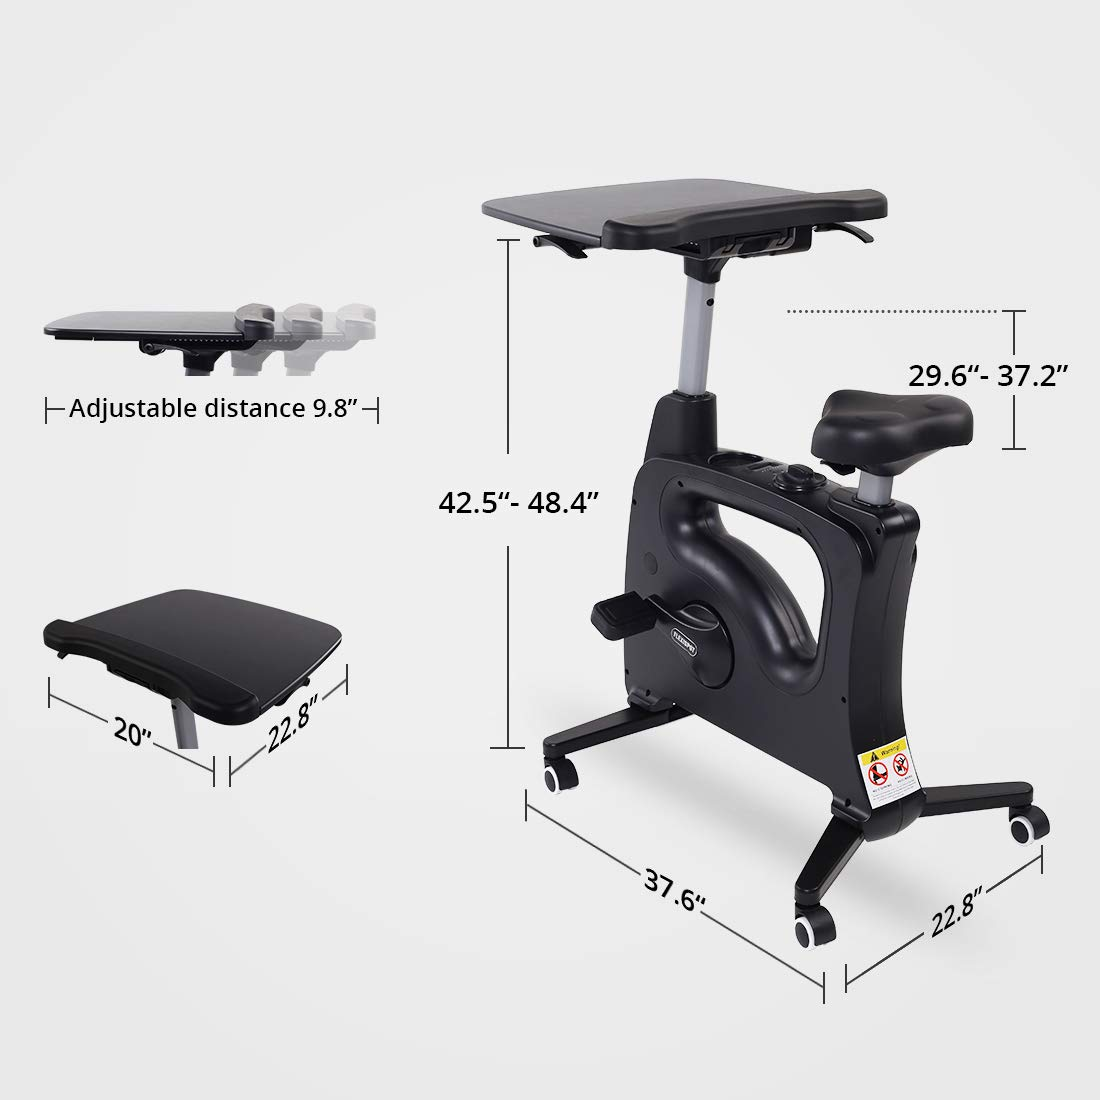 FLEXISPOT Home Office Upright Stationary Fitness Exercise Cycling Bike Height Adjustable Standing Desk - Deskcise Pro Black by FLEXISPOT (Image #5)